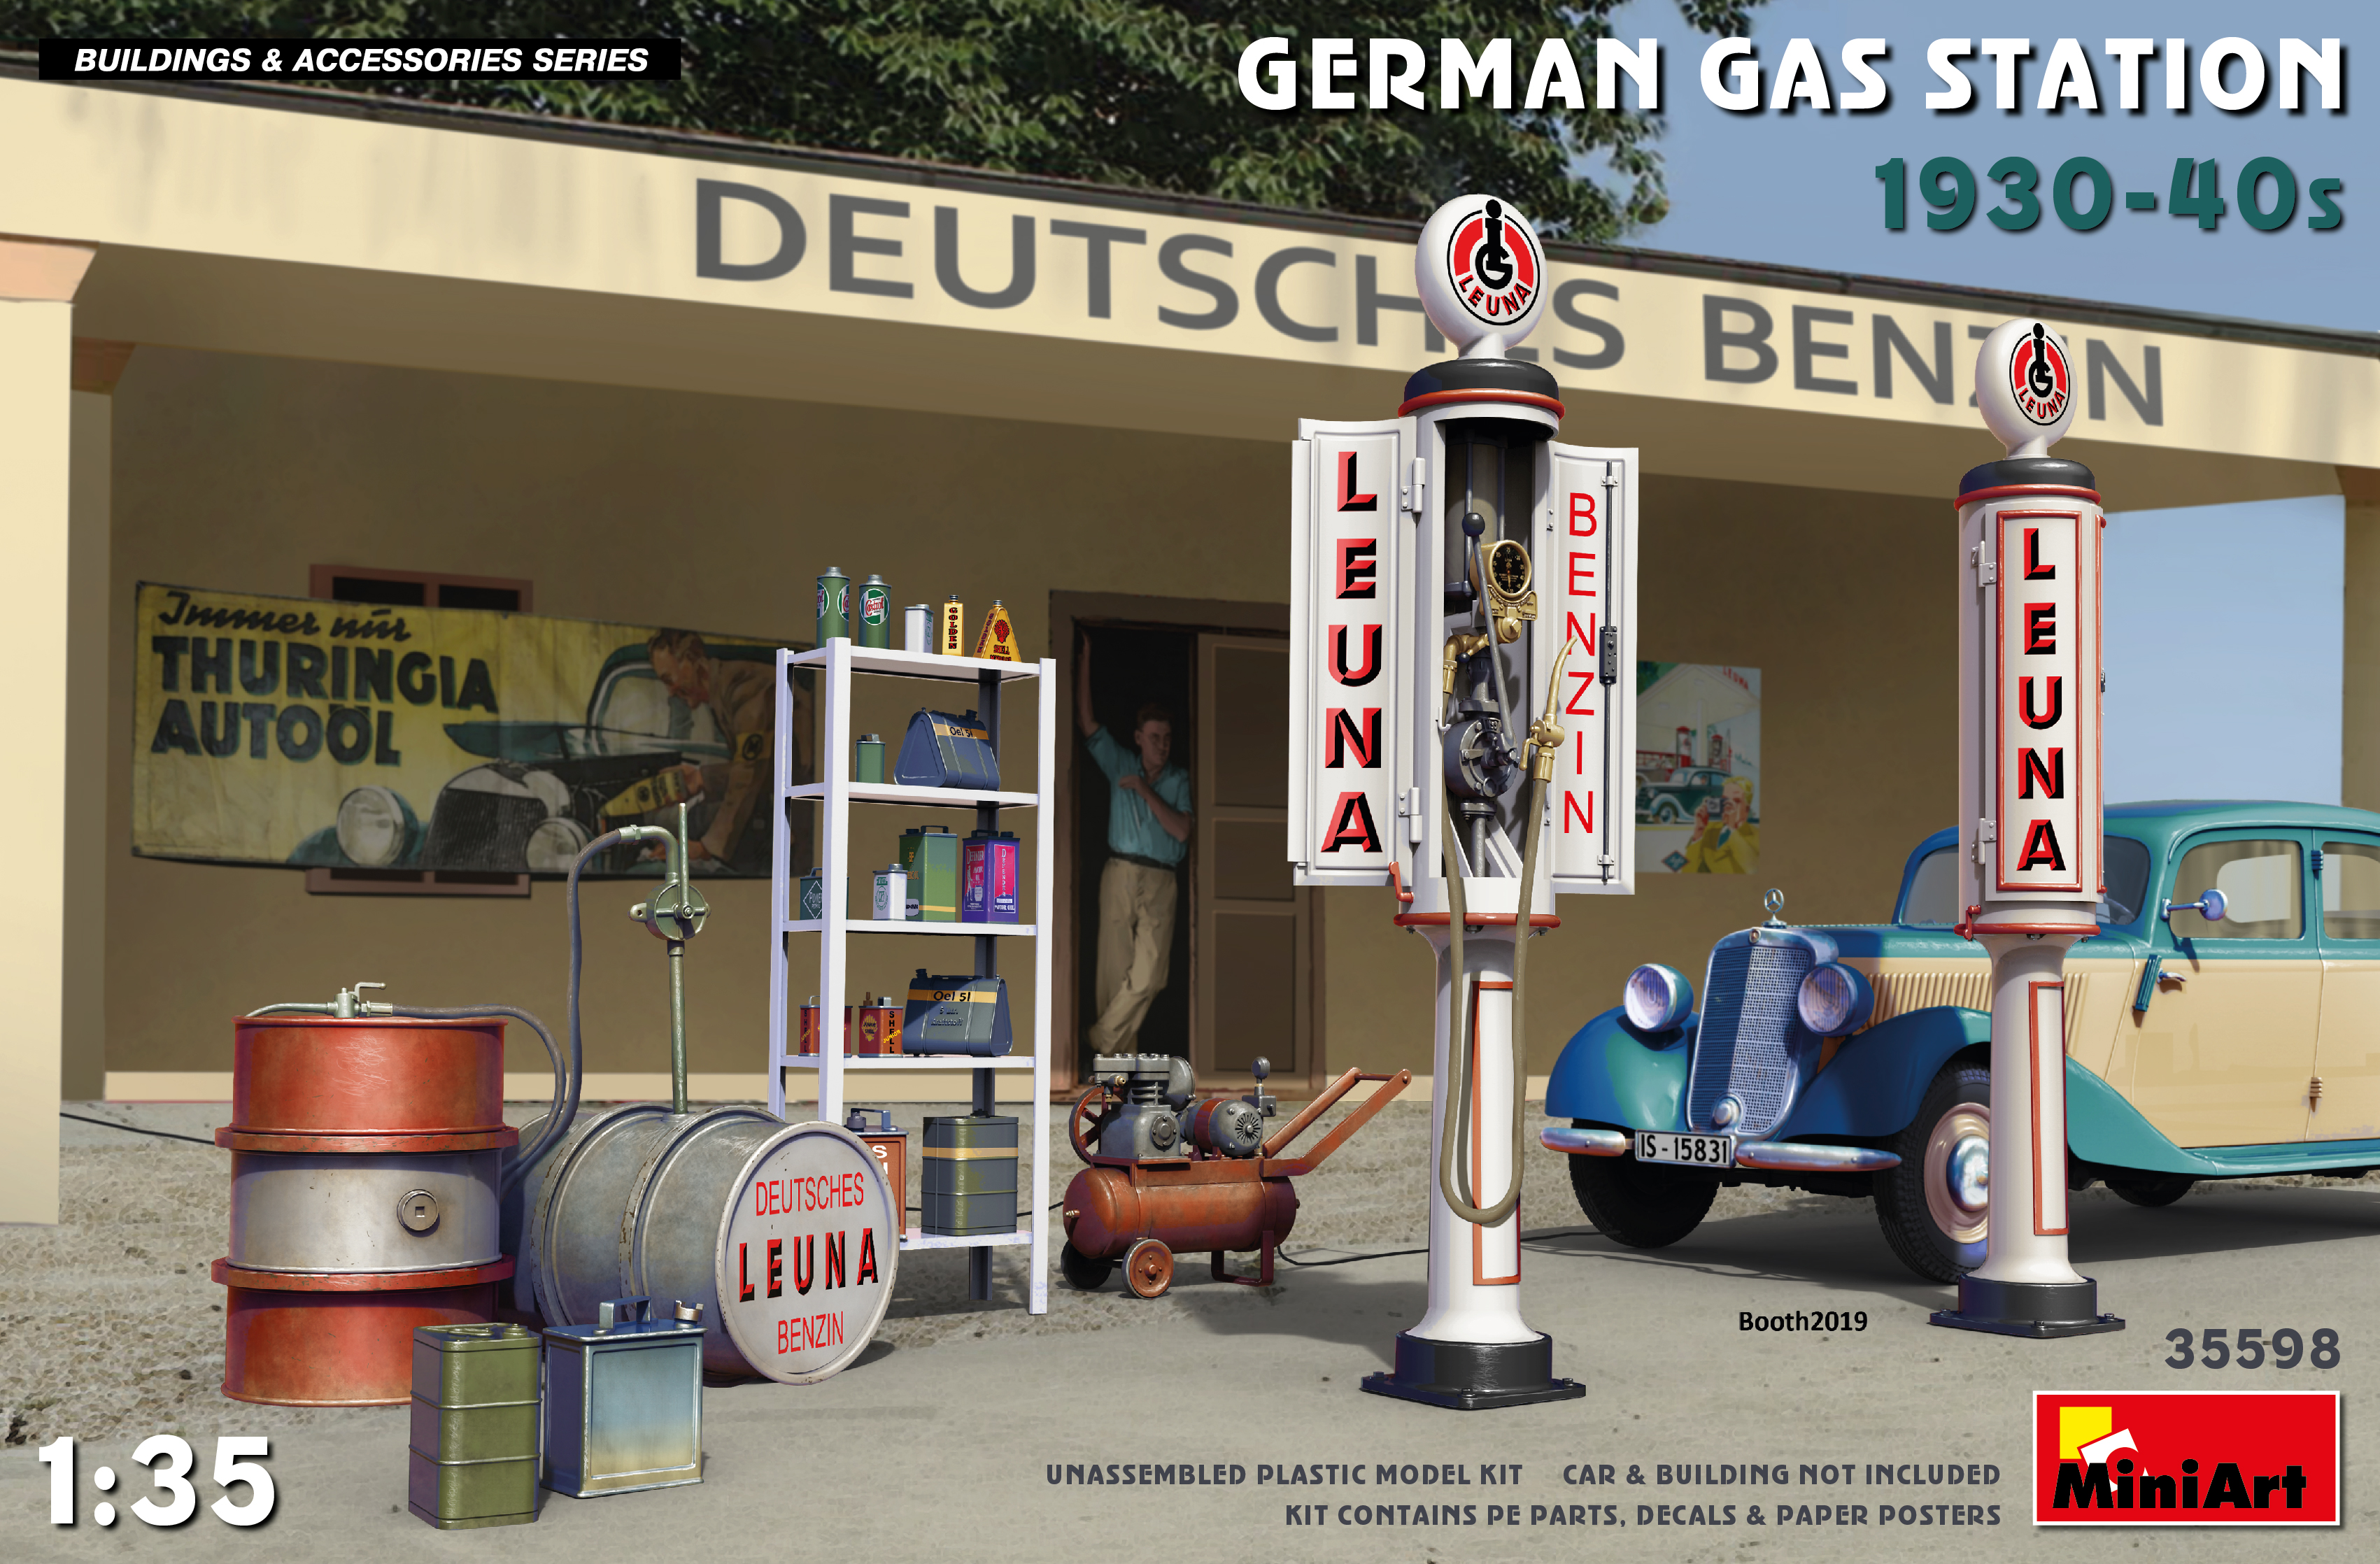 MiniArt German Gas Station 1930-40s